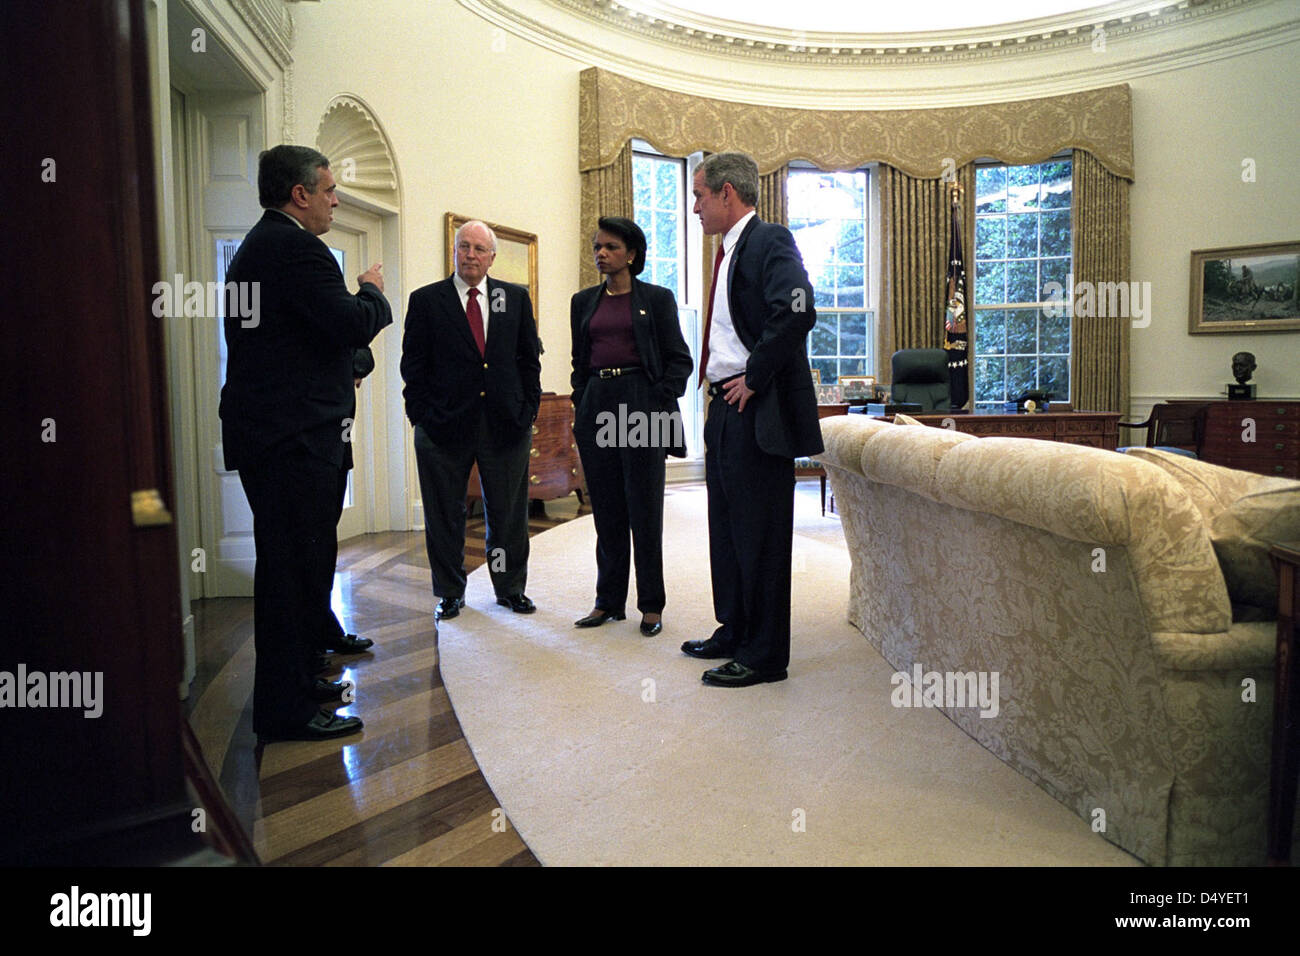 george bush oval office. President George W. Bush Meets With CIA Director Tenet, Vice Dick Cheney And National Security Advisor Condoleezza Rice Sunday, Oct. 7, Oval Office